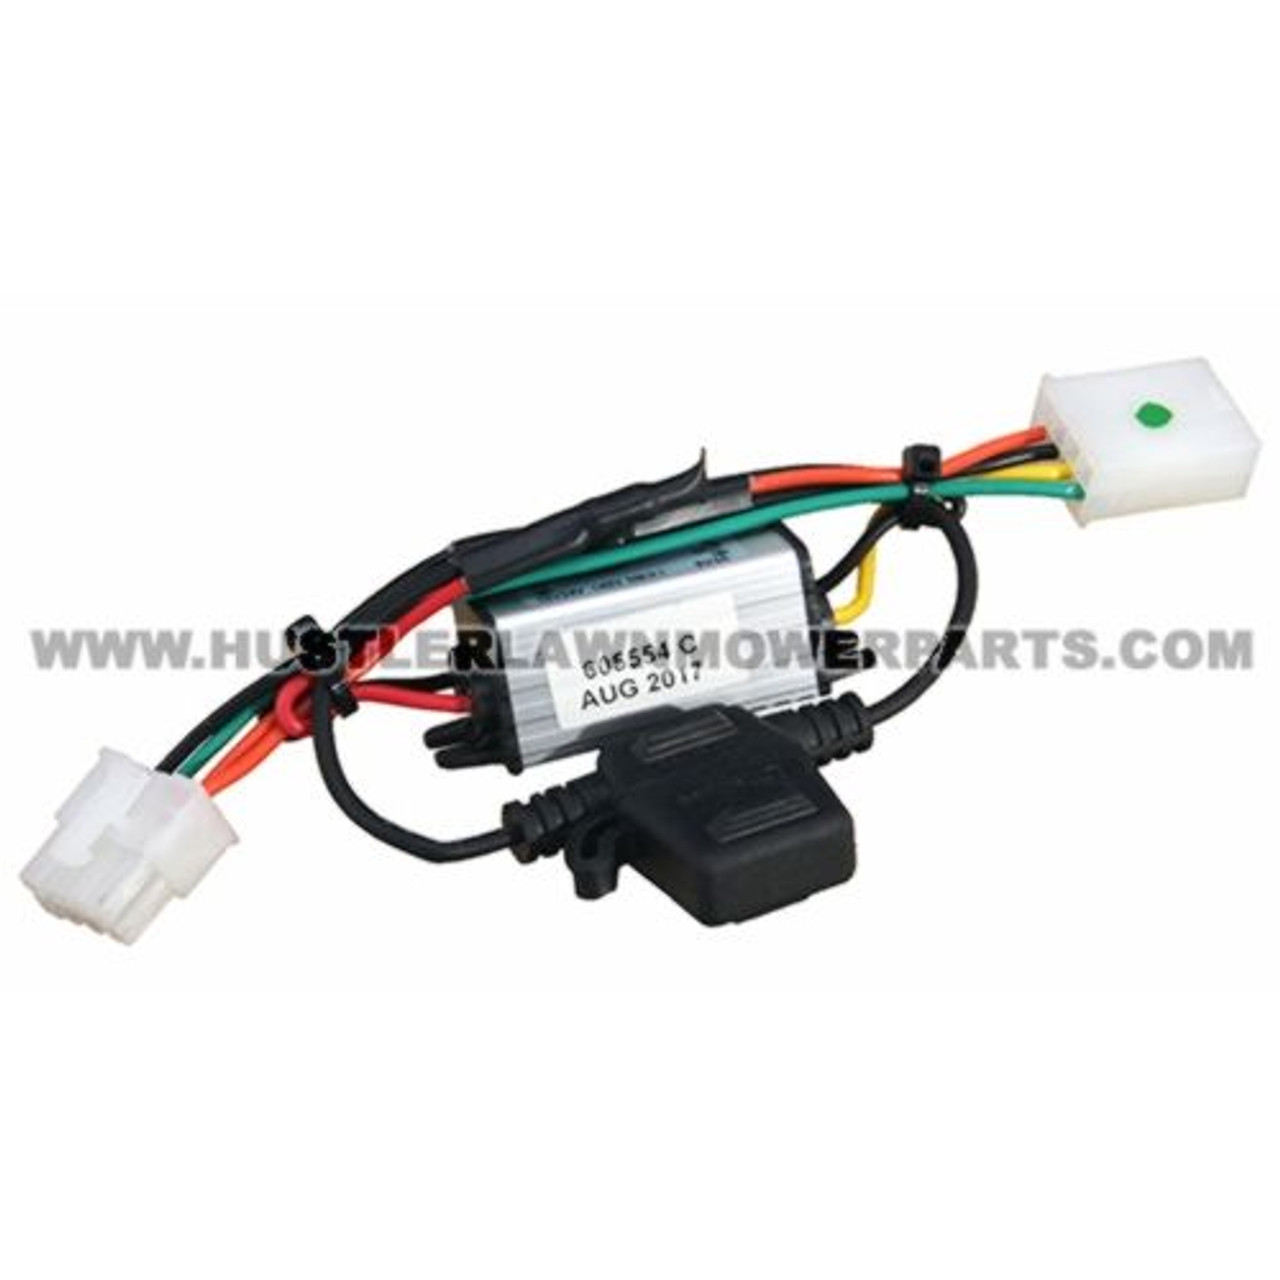 small resolution of hustler wire harness adapter 605554